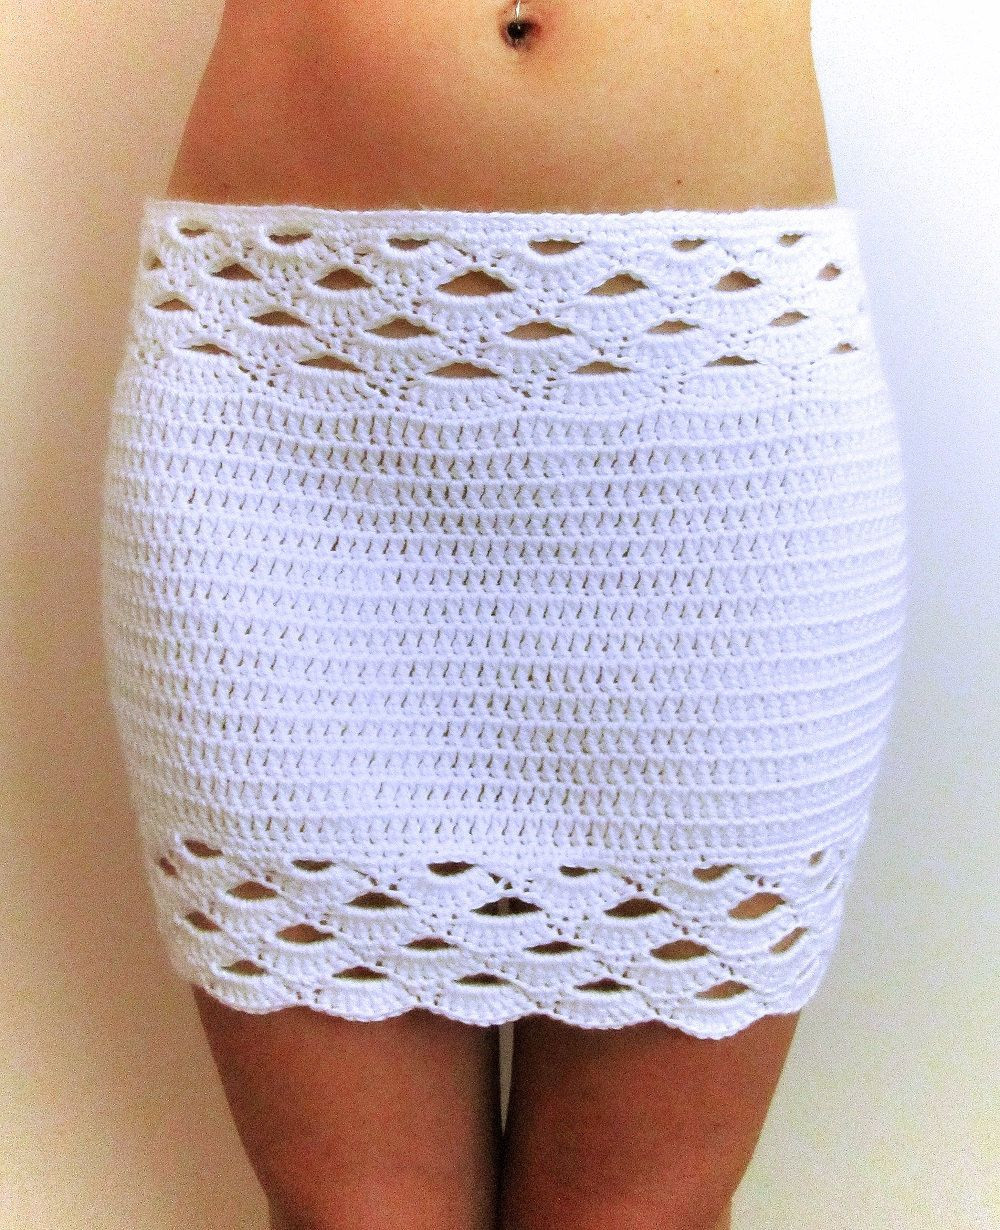 Crochet Skirt Patterns Fresh Shell Crochet Mini Skirt Pdf Pattern by Chezpascale On Of Fresh 47 Ideas Crochet Skirt Patterns